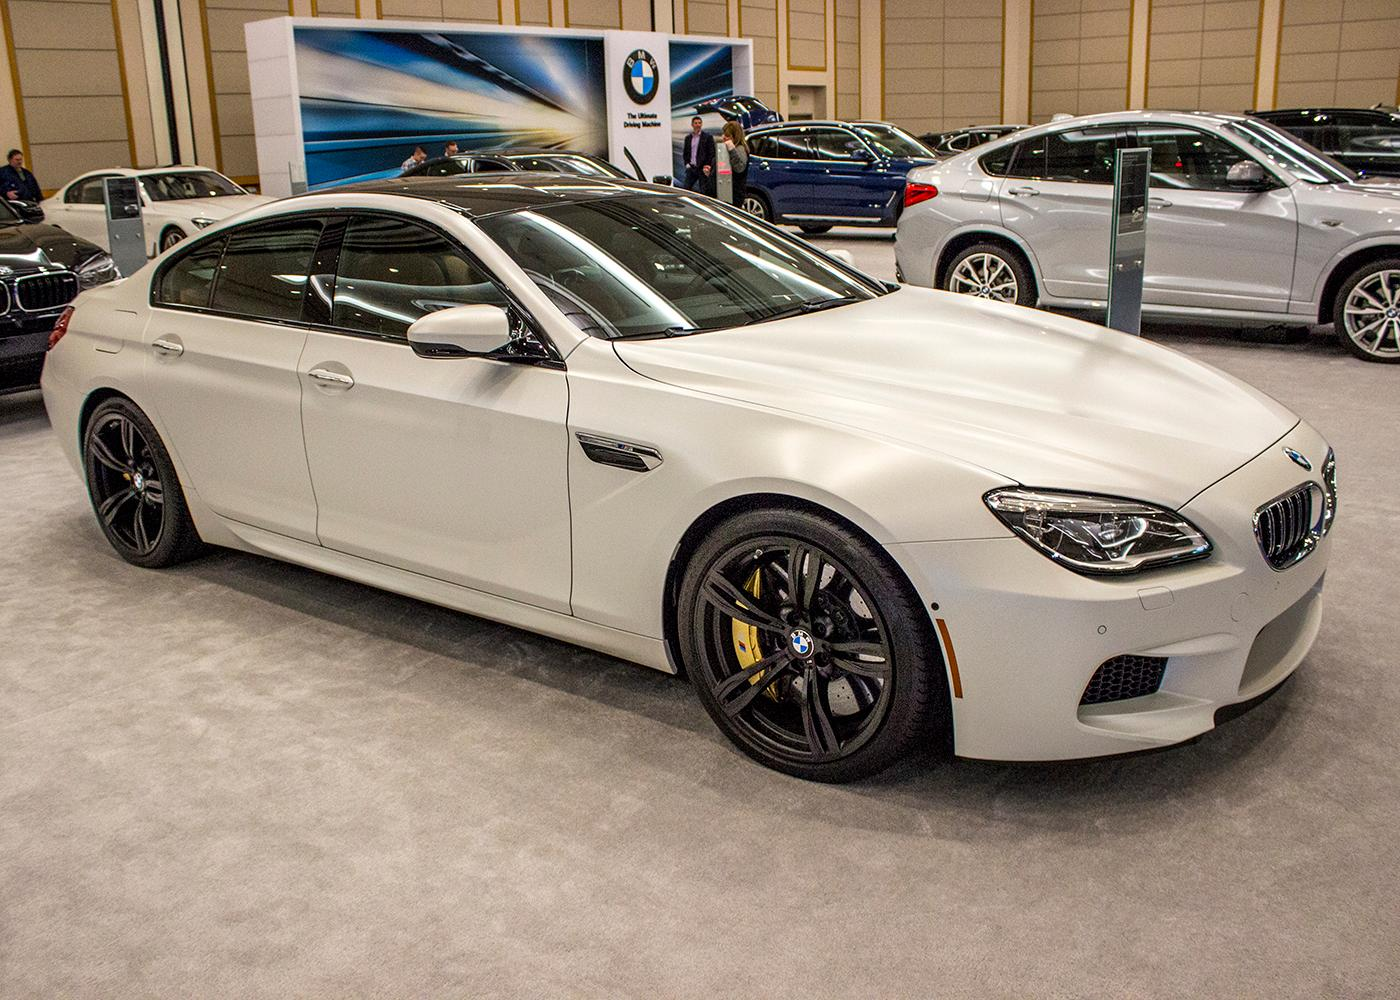 2018 BMW M6 Gran Coupe - The Portland International Auto Show began at the Oregon Convention Center on Jan. 25, 2018. The event drew prospective buyers and others who enjoyed looking at and comparing vehicles. Photo by Amanda Butt